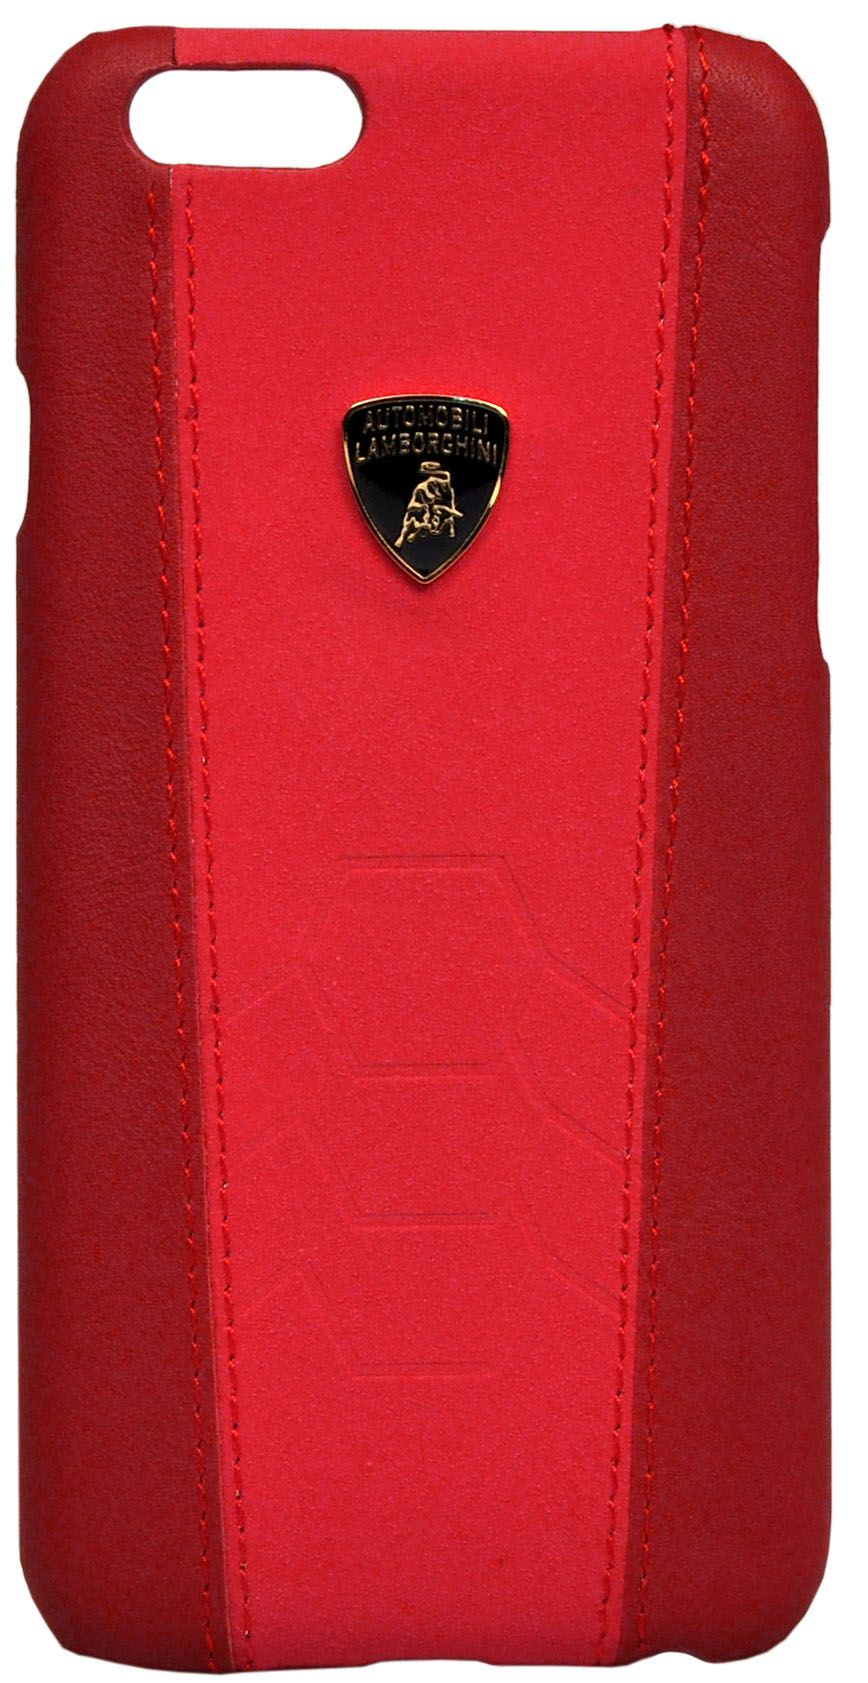 Lamborghini  iPhone 6 Murcielago Hard - Red, картинка 1